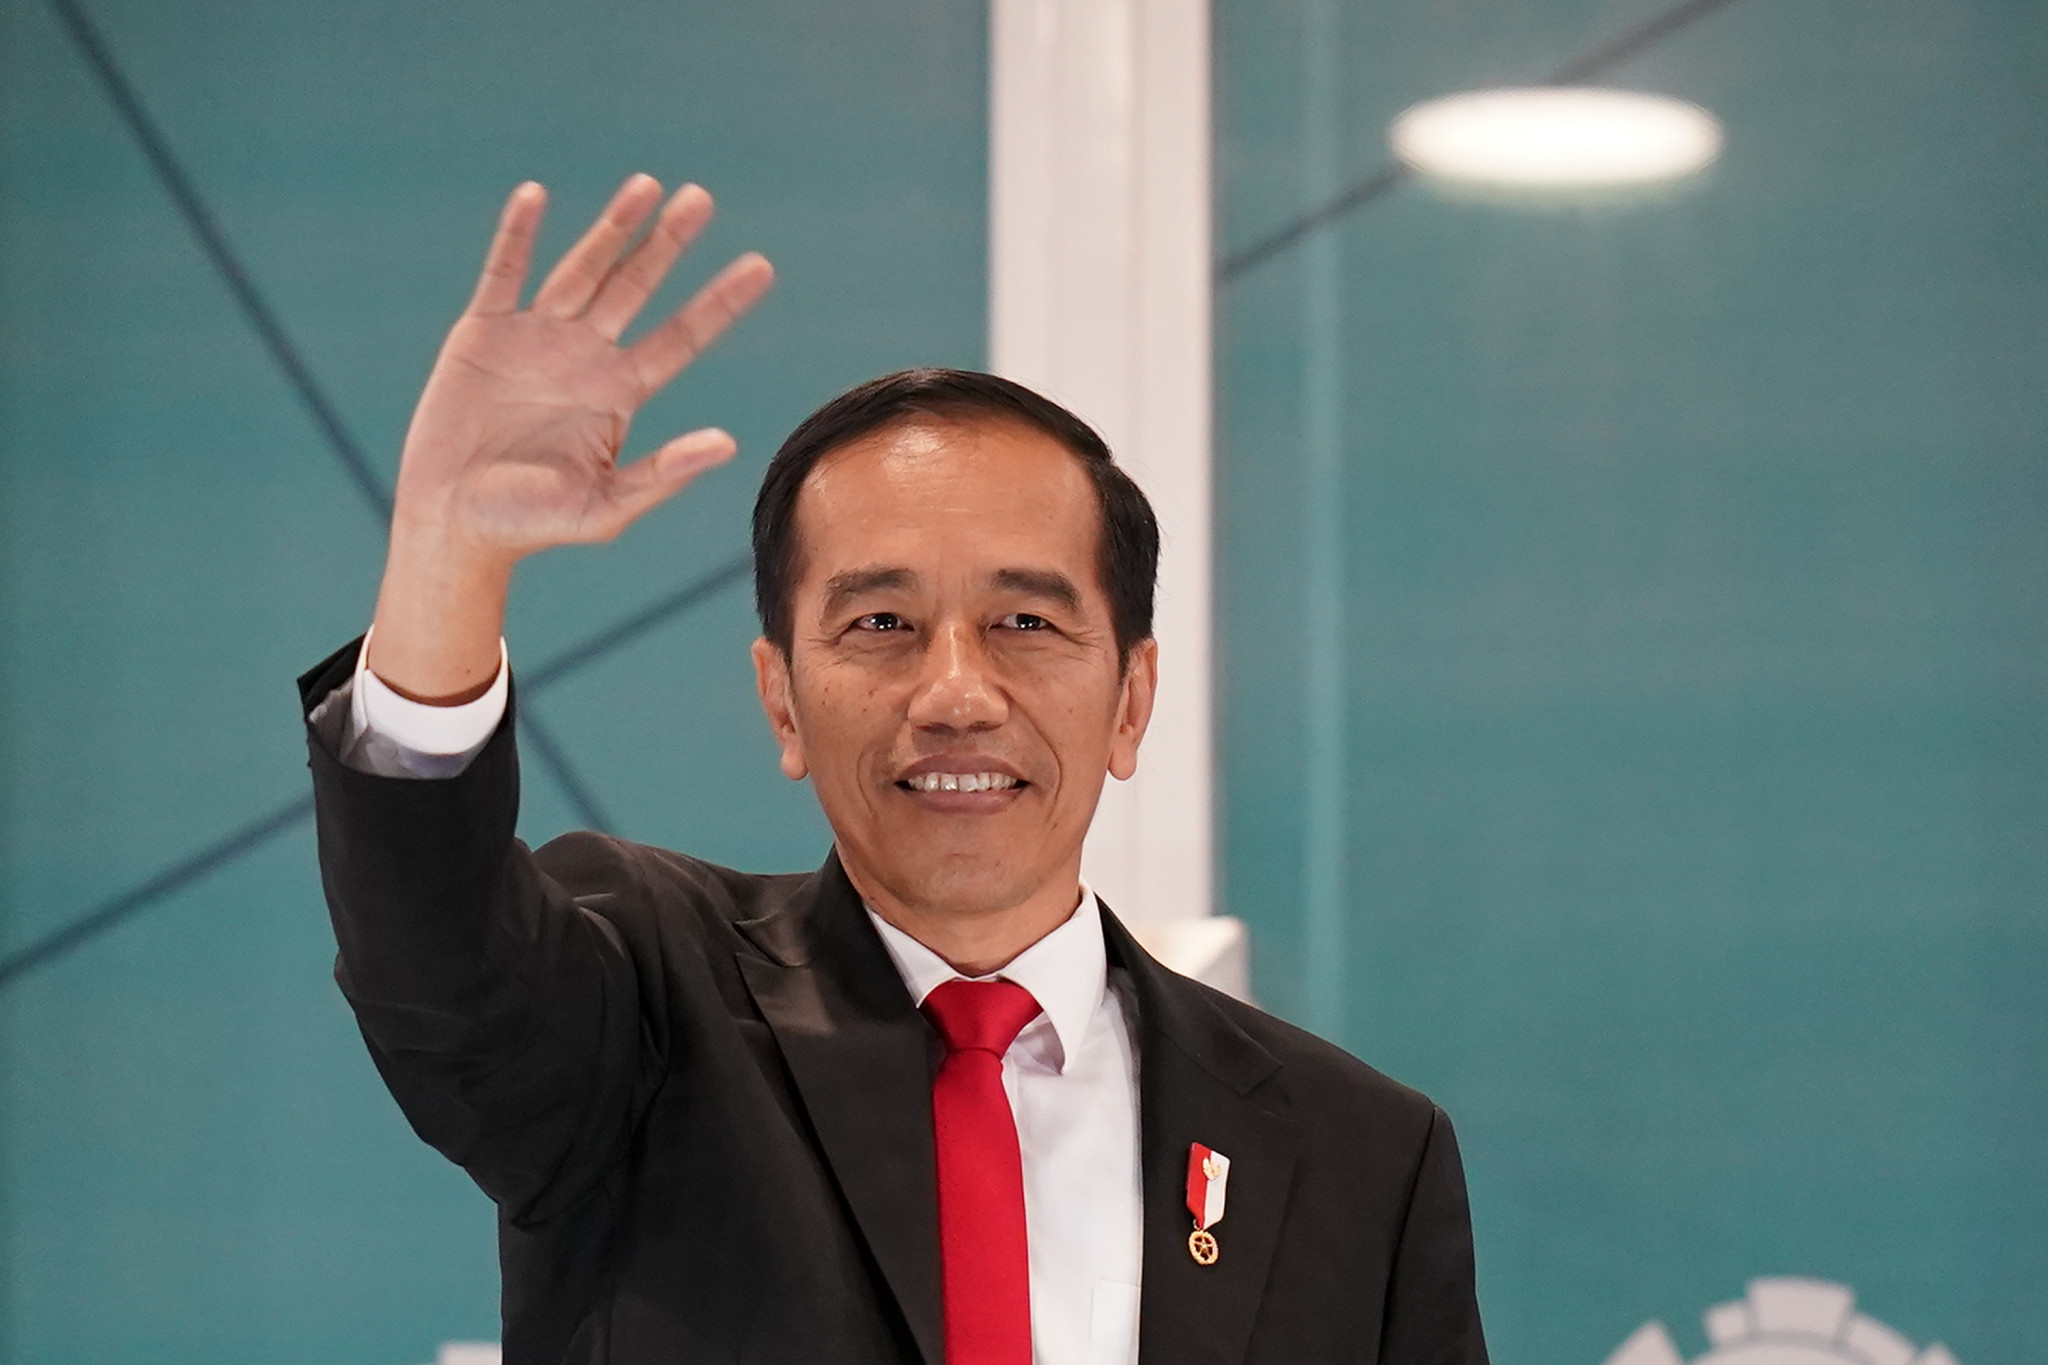 Indonesia submit official letter confirming plan to bid for 2032 Olympic and Paralympic Games